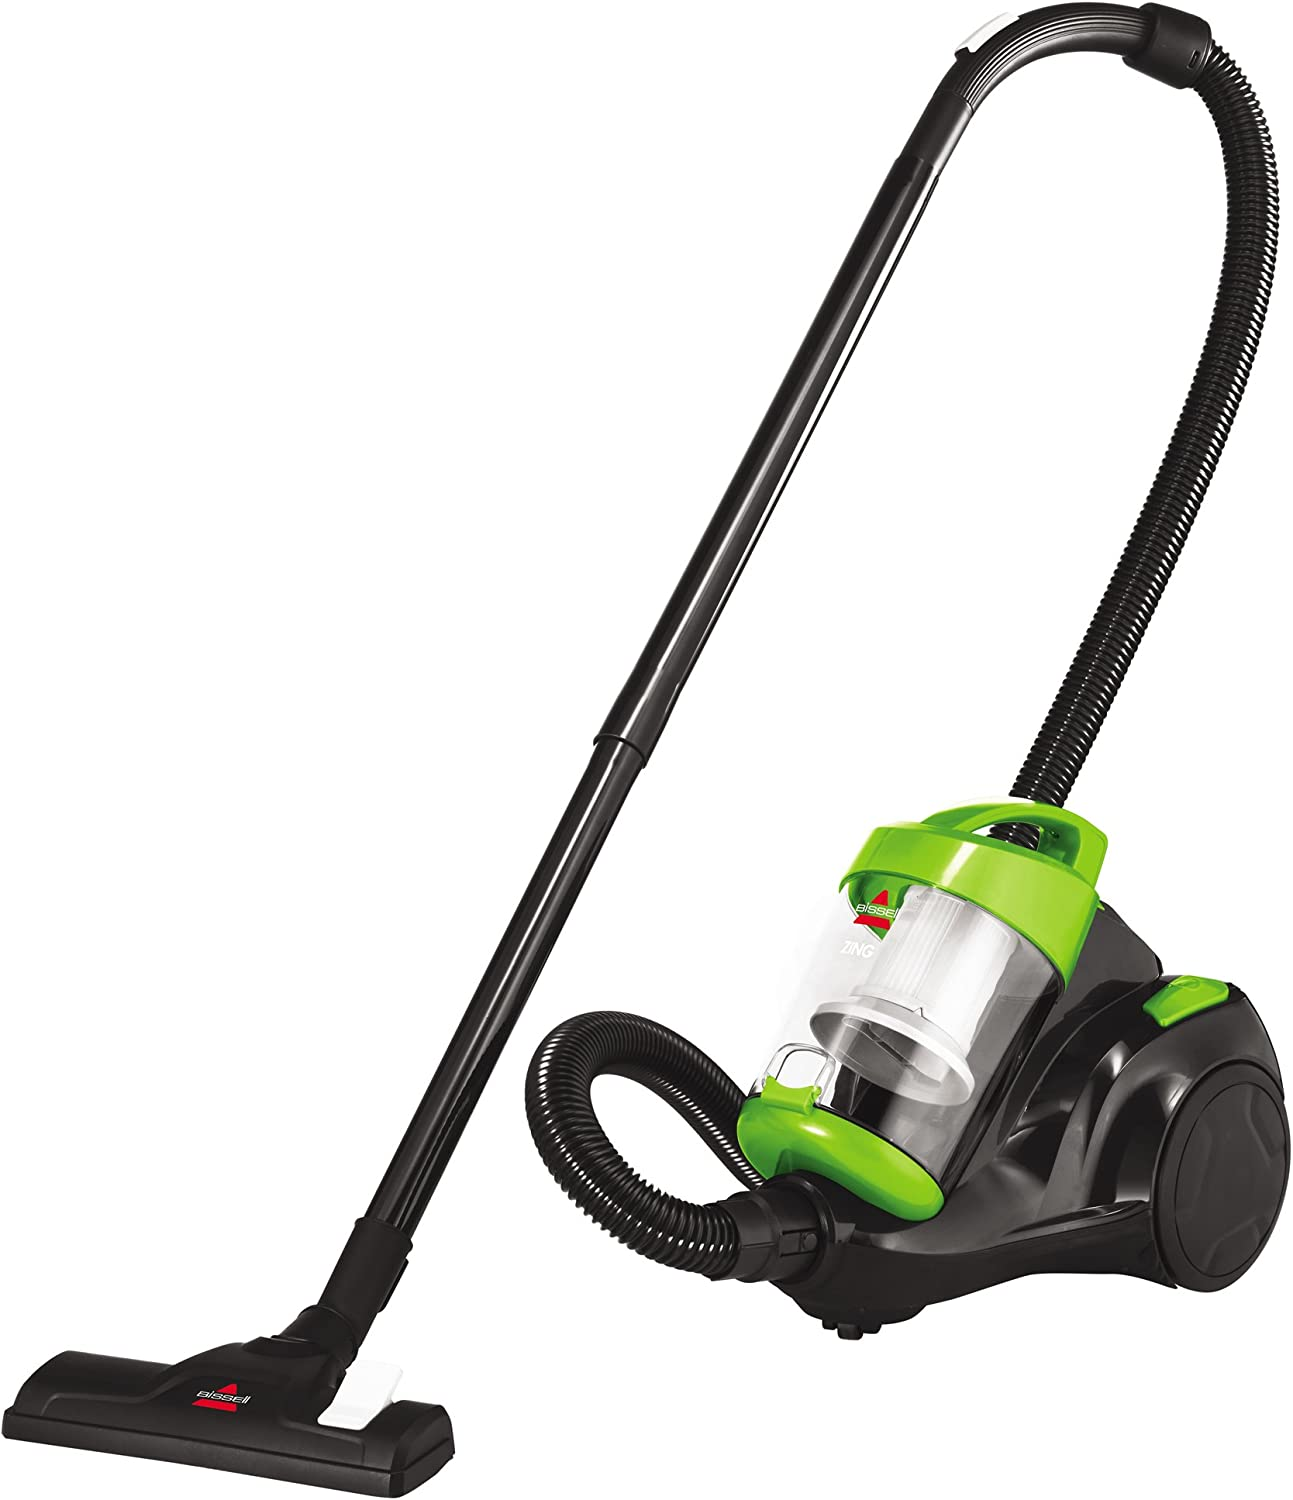 Bissell Zing compact canister vacuum cleaner